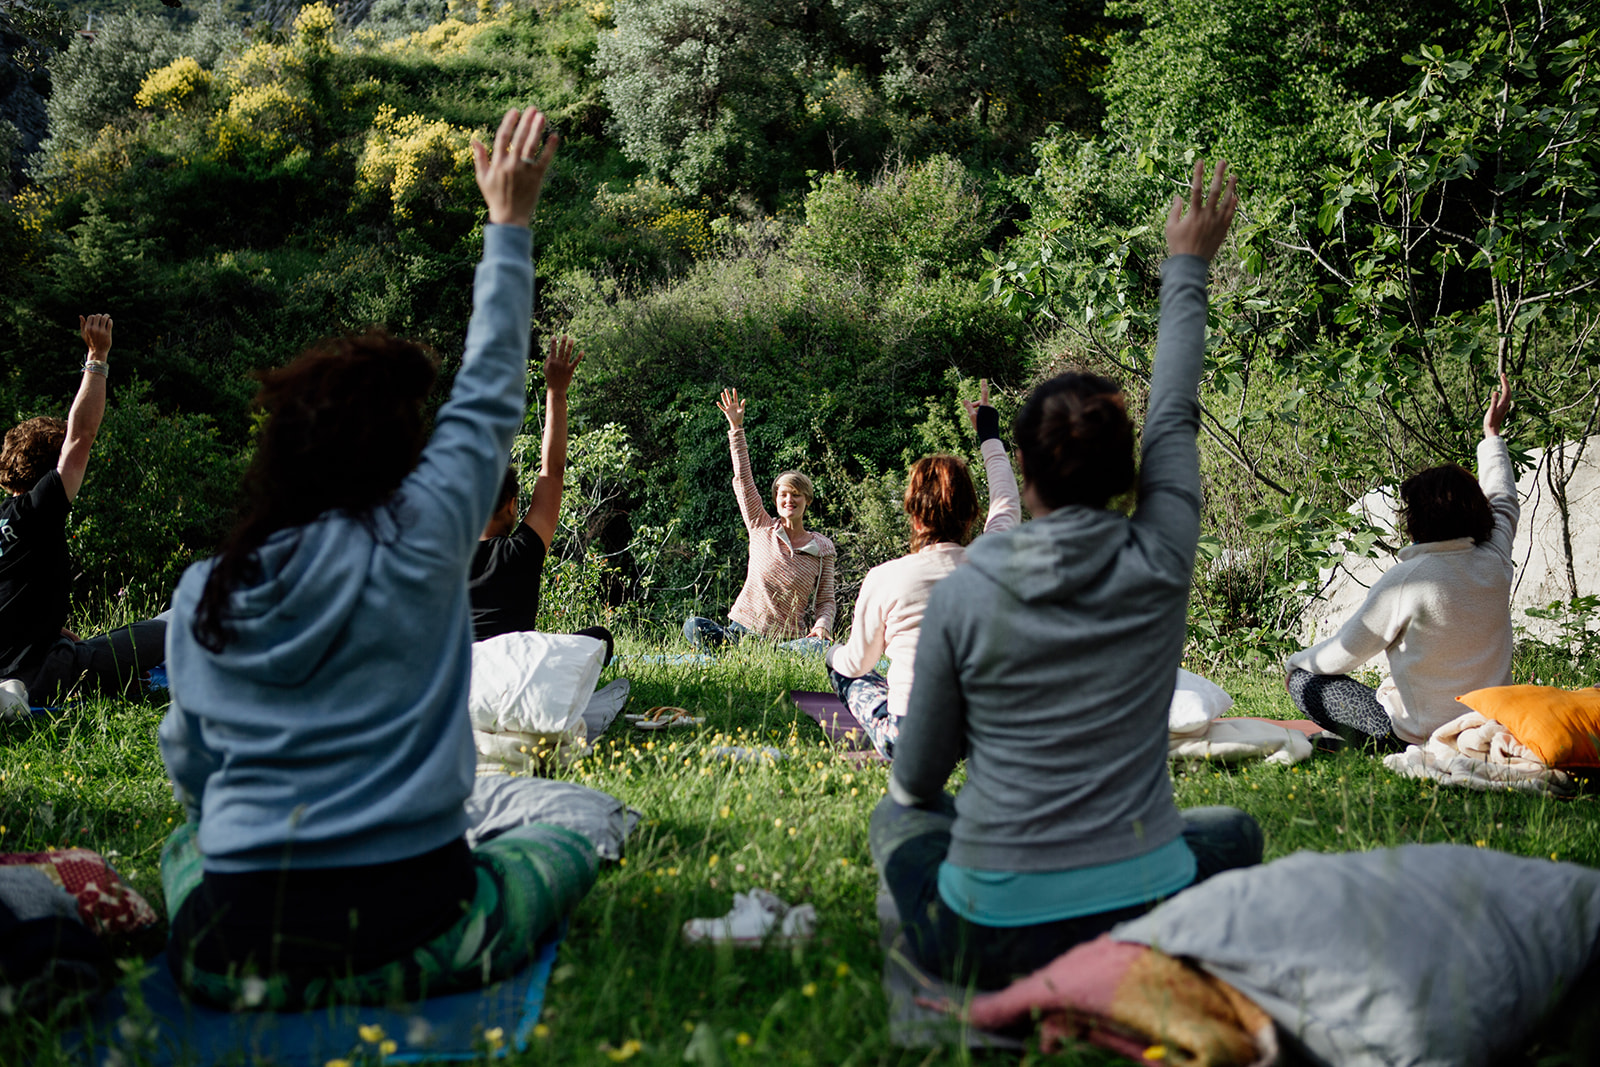 seated yoga outside on grass - hiking yoga holiday montenegro